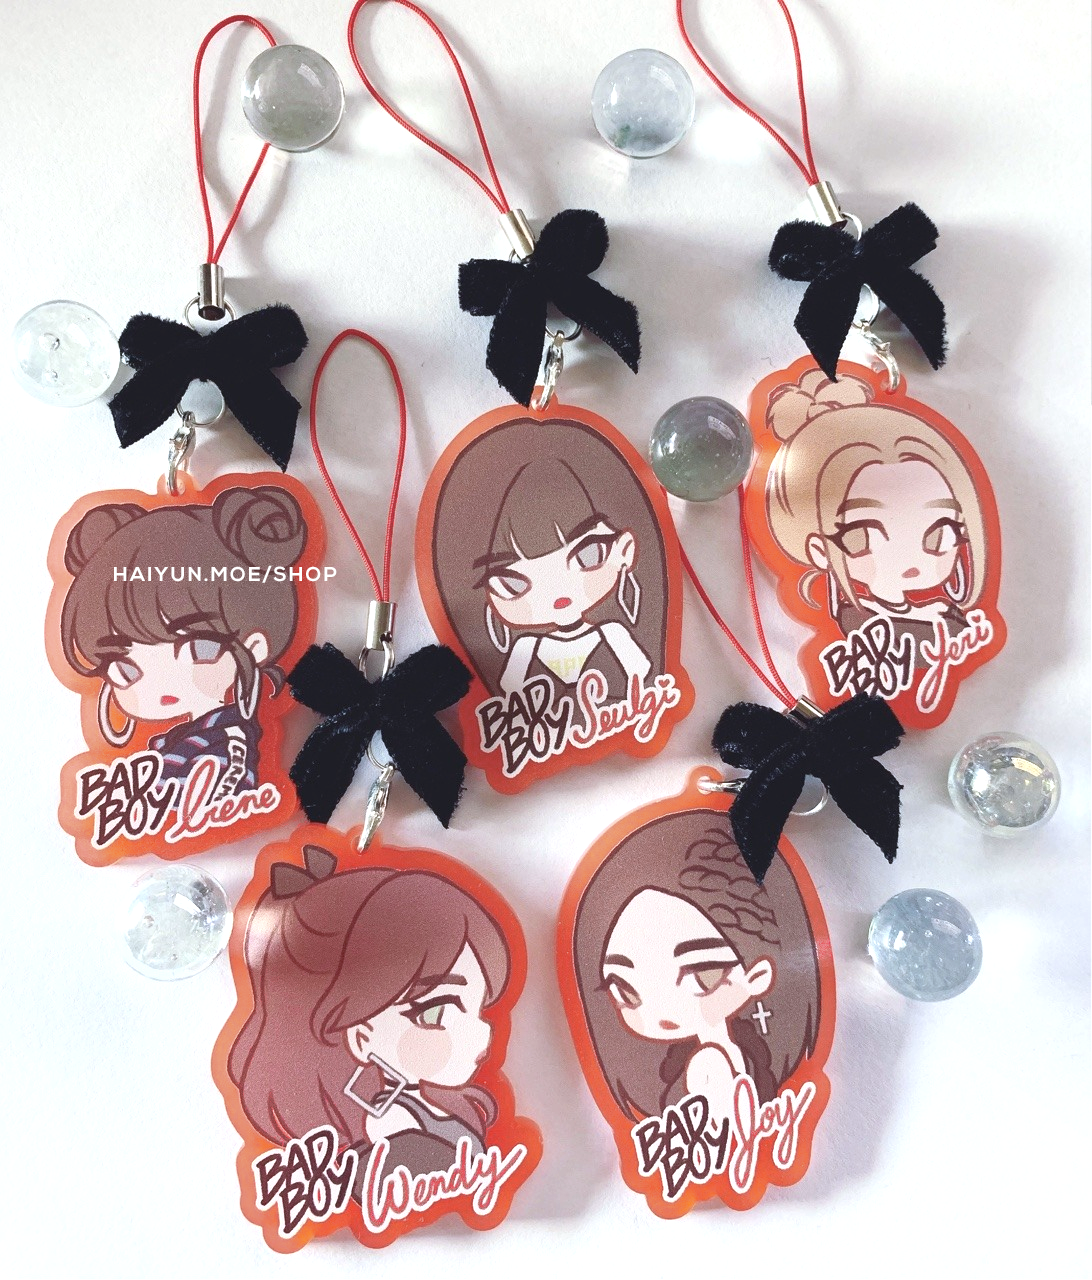 rv charms promo.png